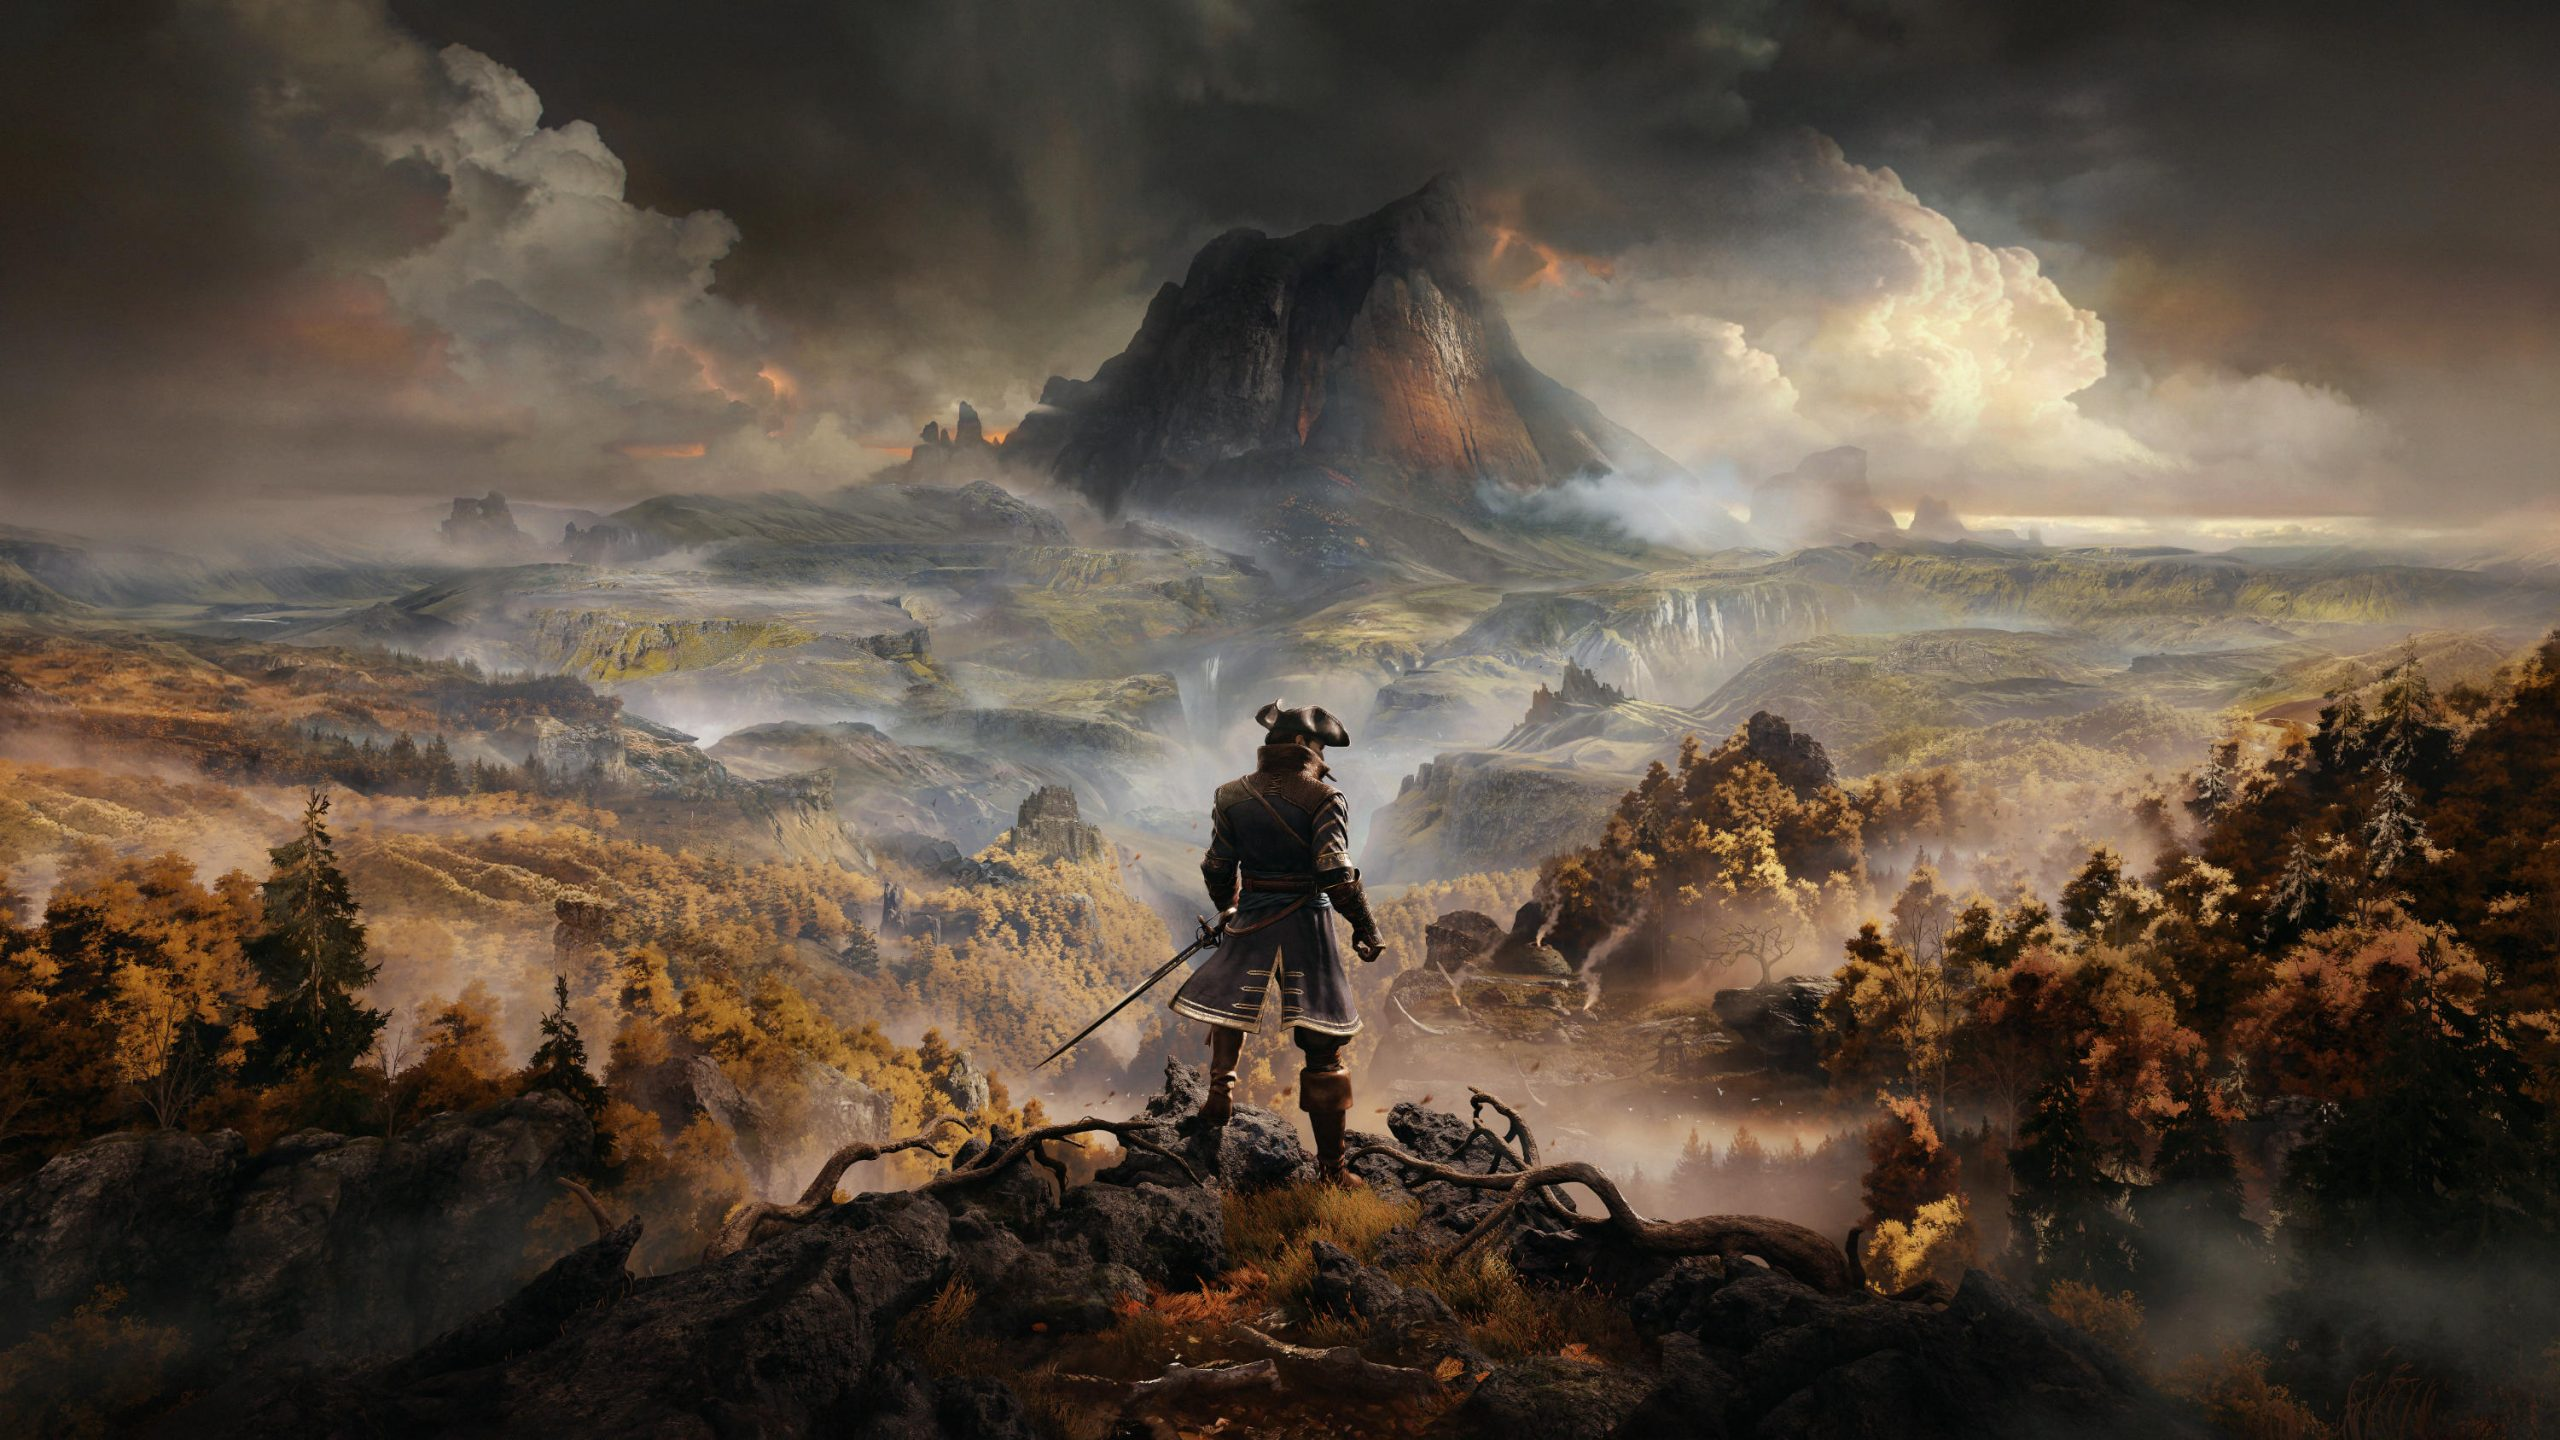 Key Art From Greedfall Featuring A Man Looking At A Mountain From Afar